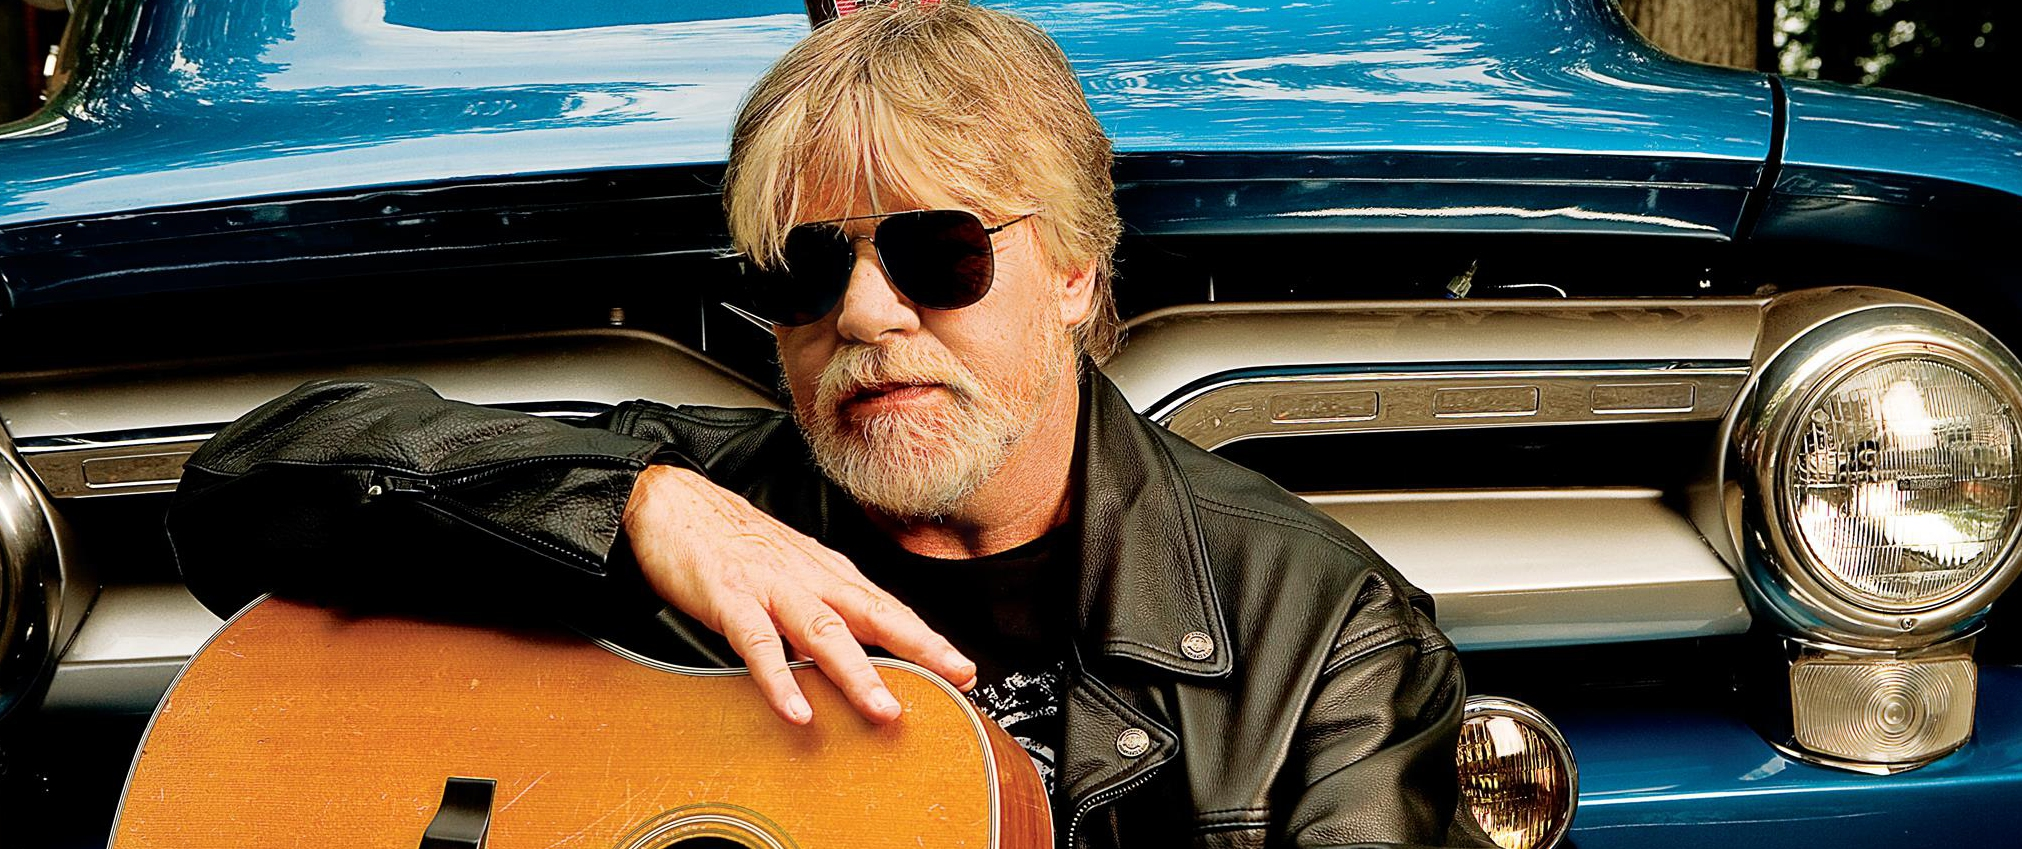 Plaat van de week: Bob Seger – Detroit Made